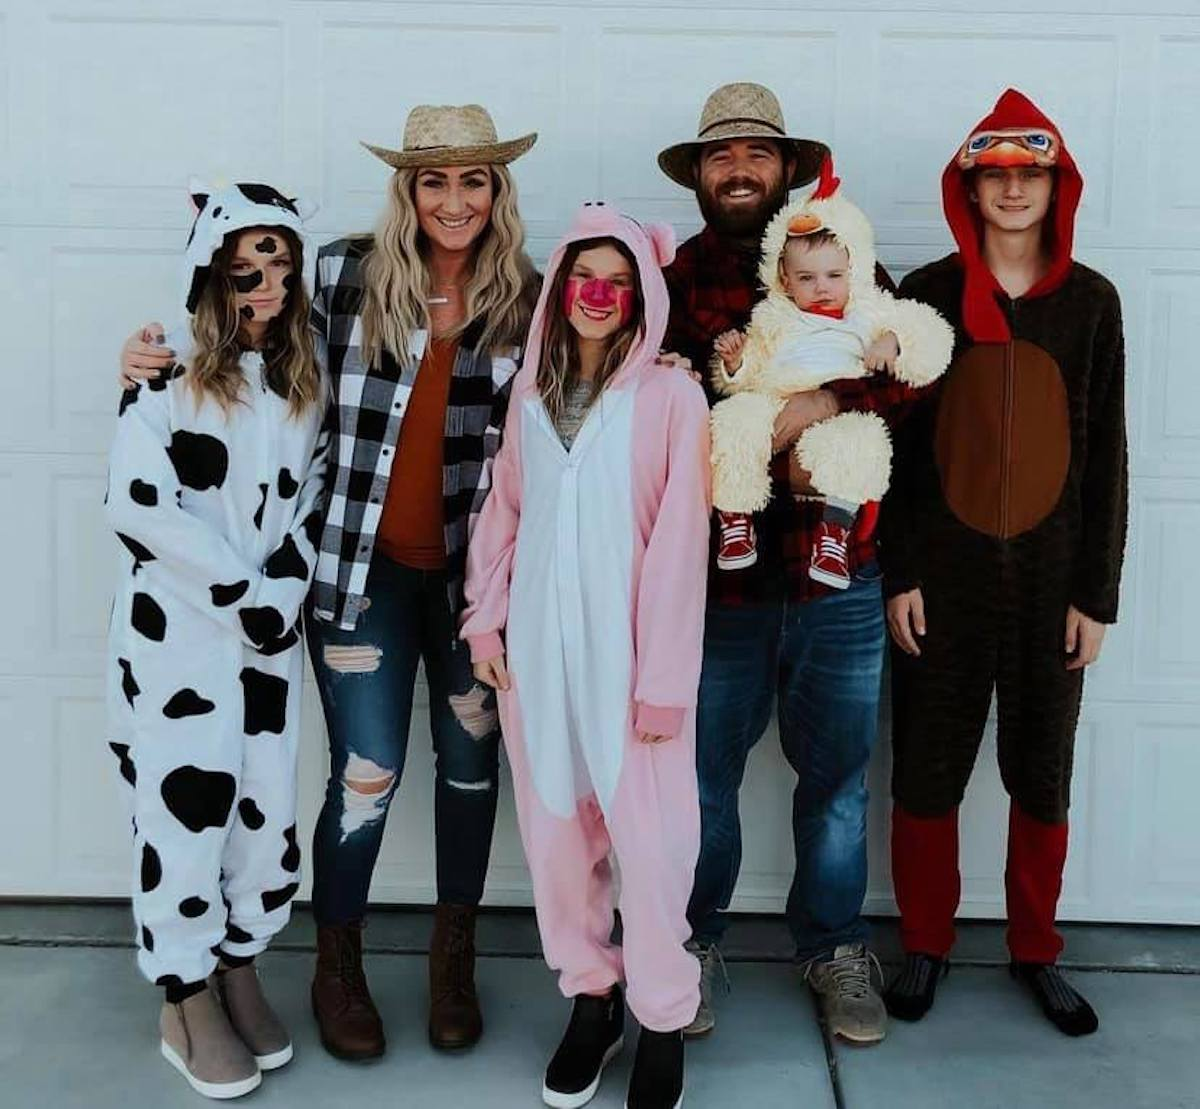 Man and woman dressed as farmers surrounded by teenagers and baby wearing animal costumes.